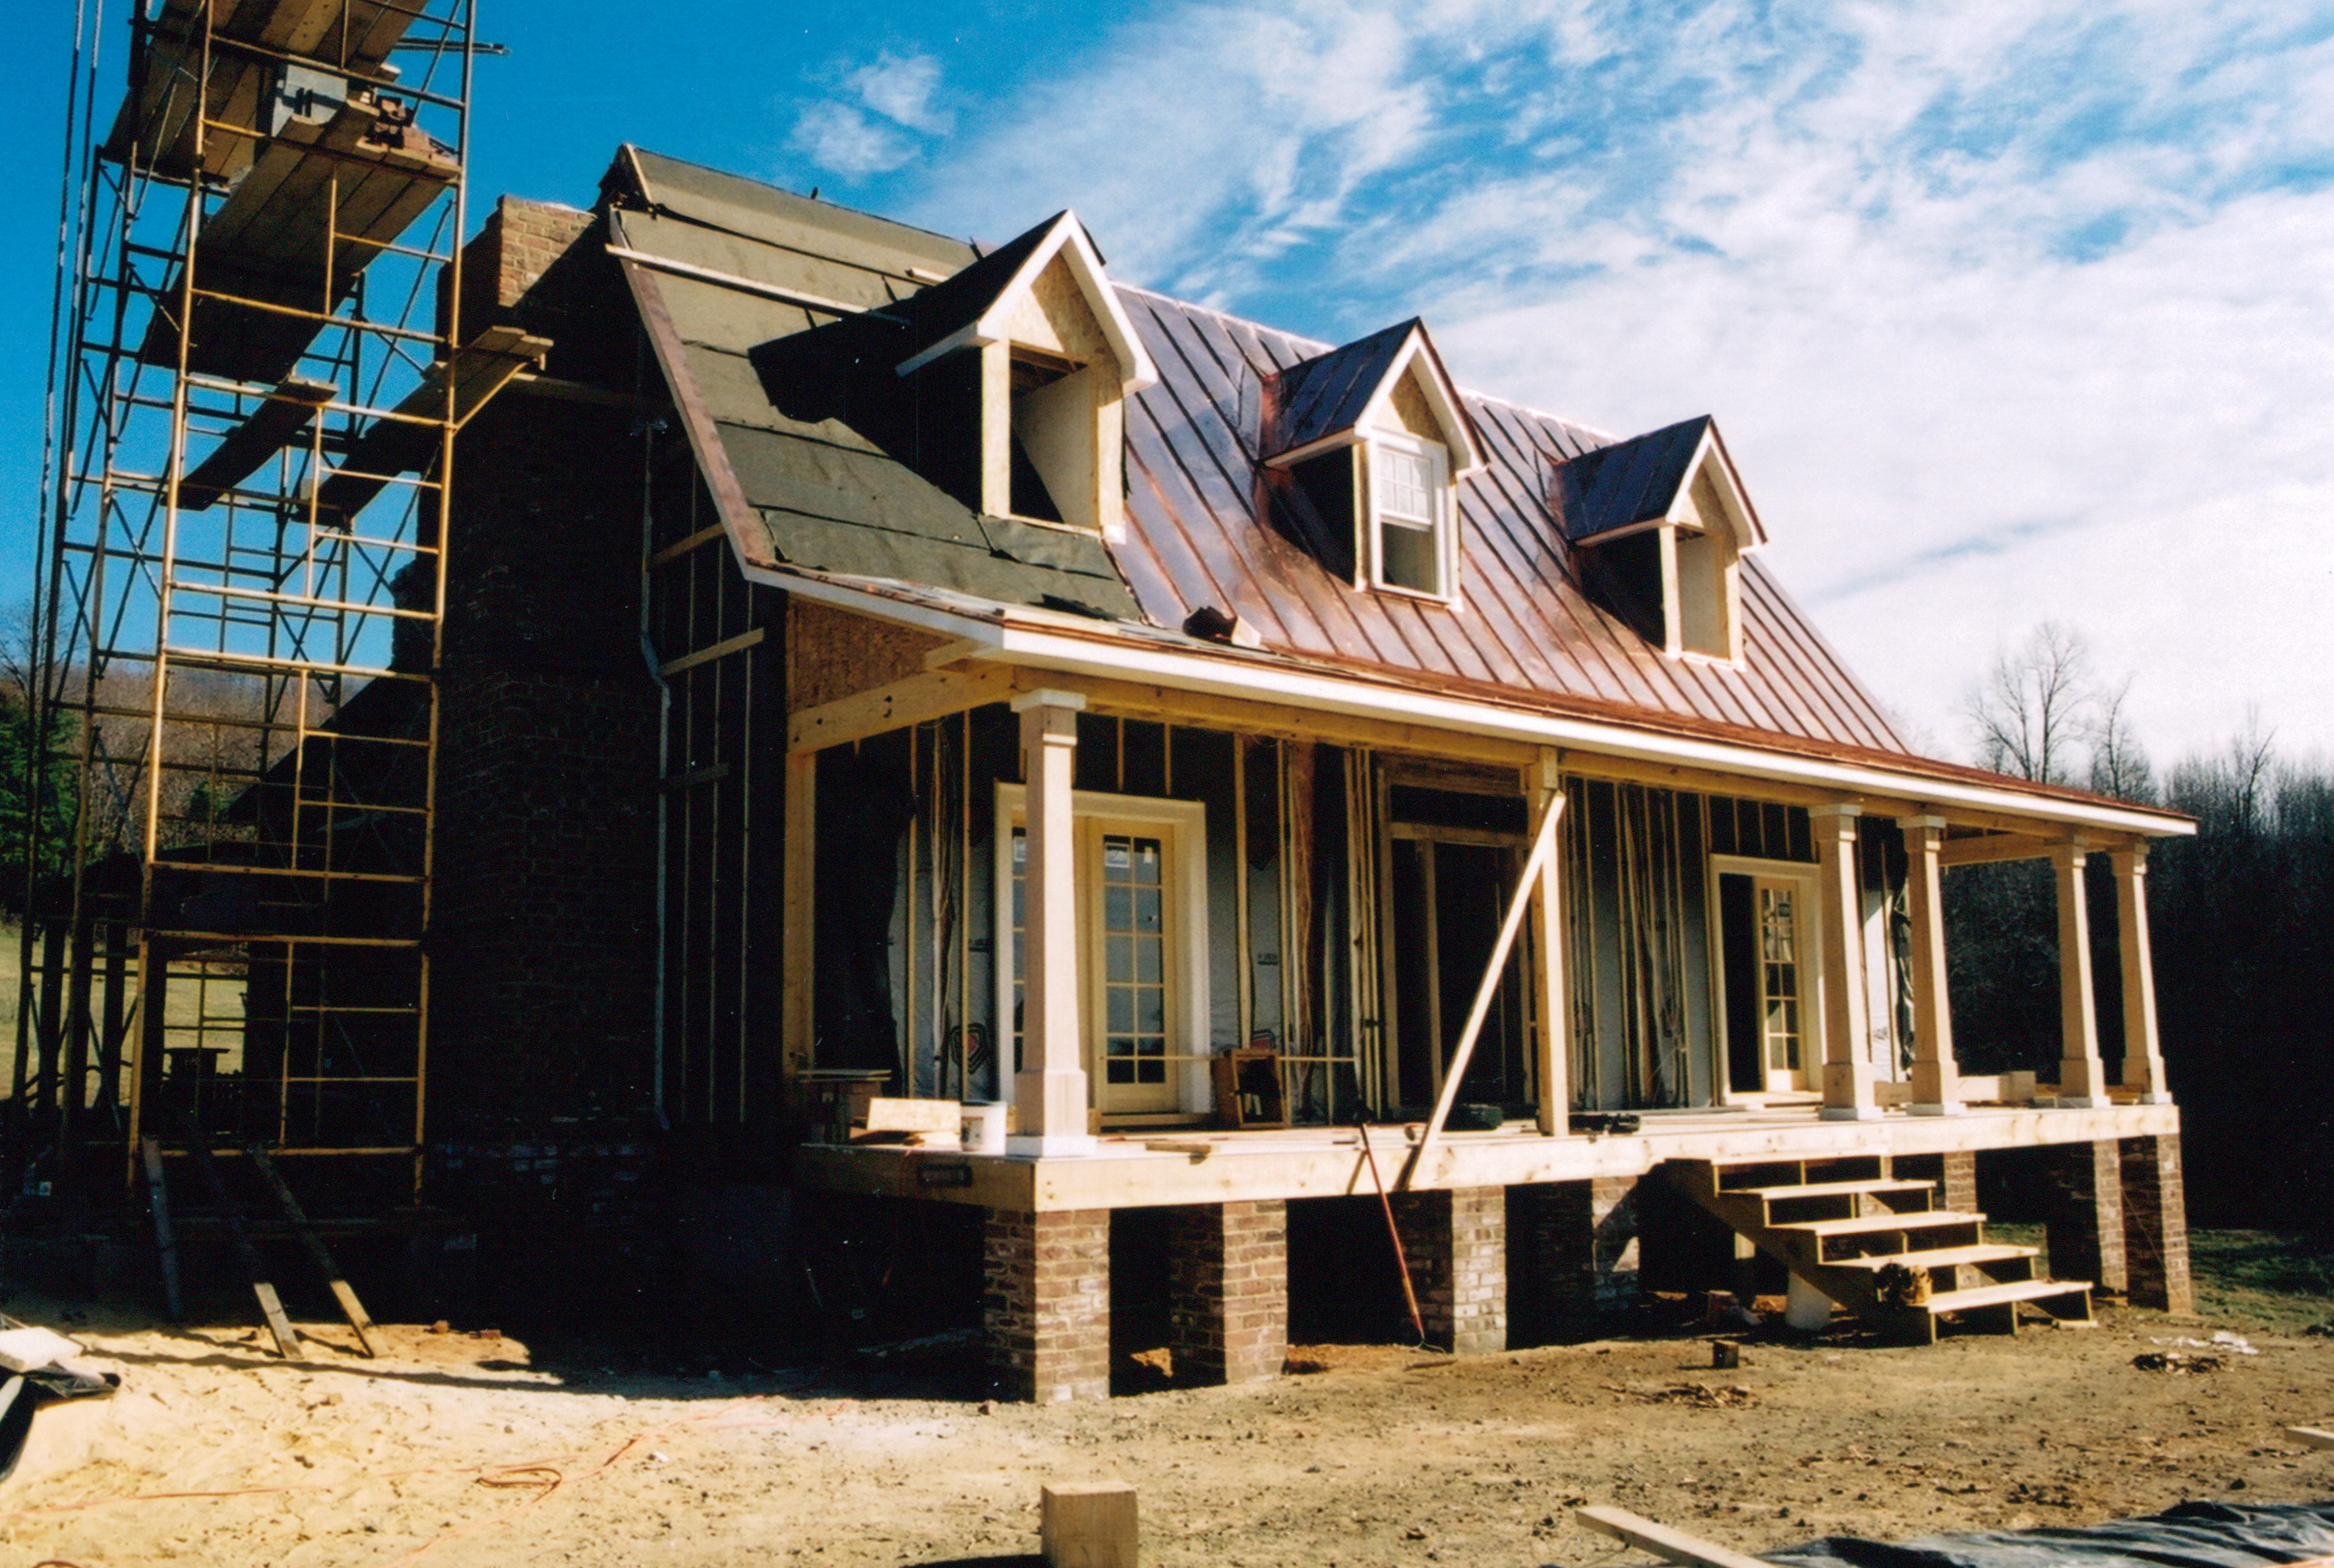 the ruth house part 13 handmade houses with noah bradley after we had attached the stress skin panels to the frame to create the outside walls and we had framed the front porch and the dormer windows